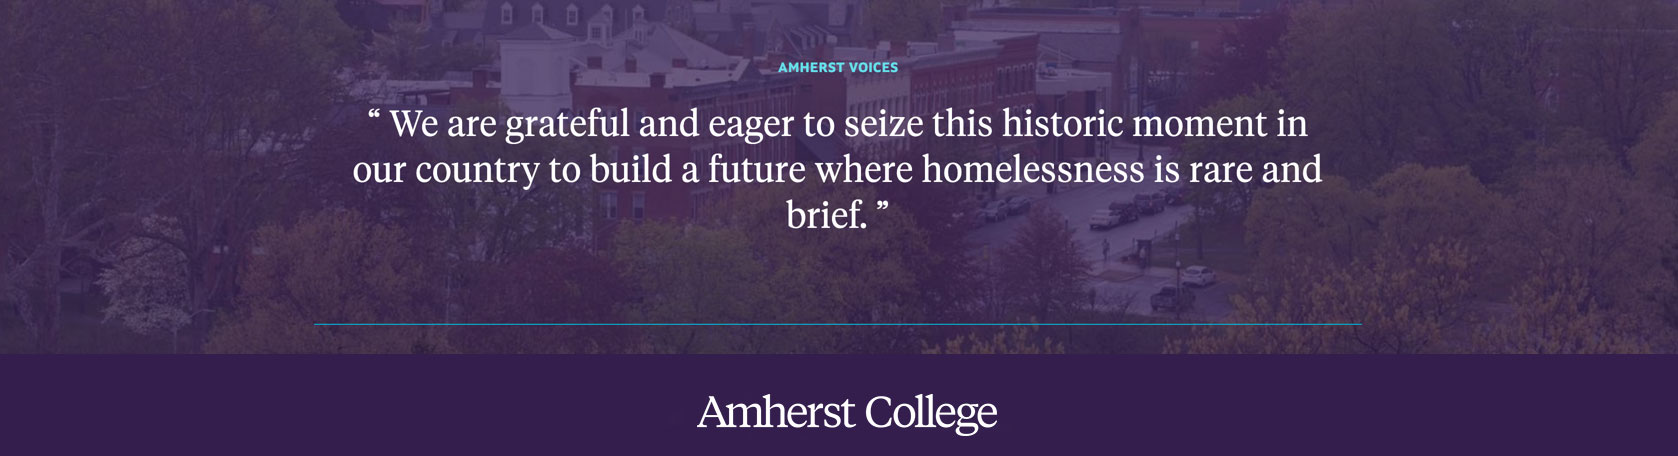 Quote by Rosanne Haggerty about ending homelessness